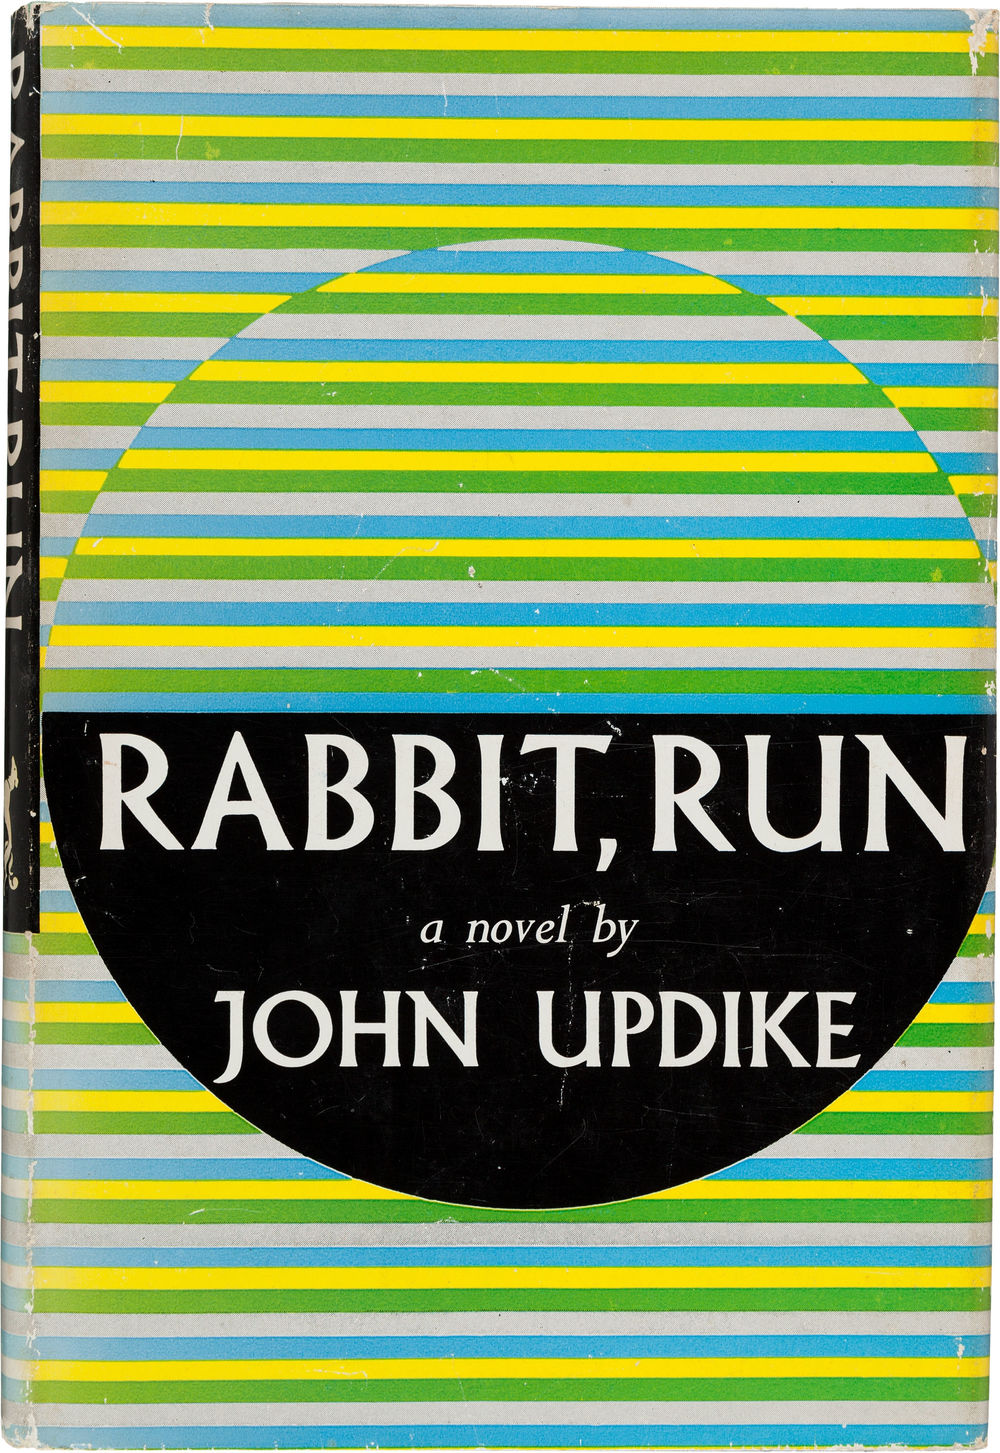 John Updike.      Rabbit, Run.    New York: Knopf, 1960. First edition. This particular copy is signed by the author and will be auctioned on Heritage Auctions on April 2nd.